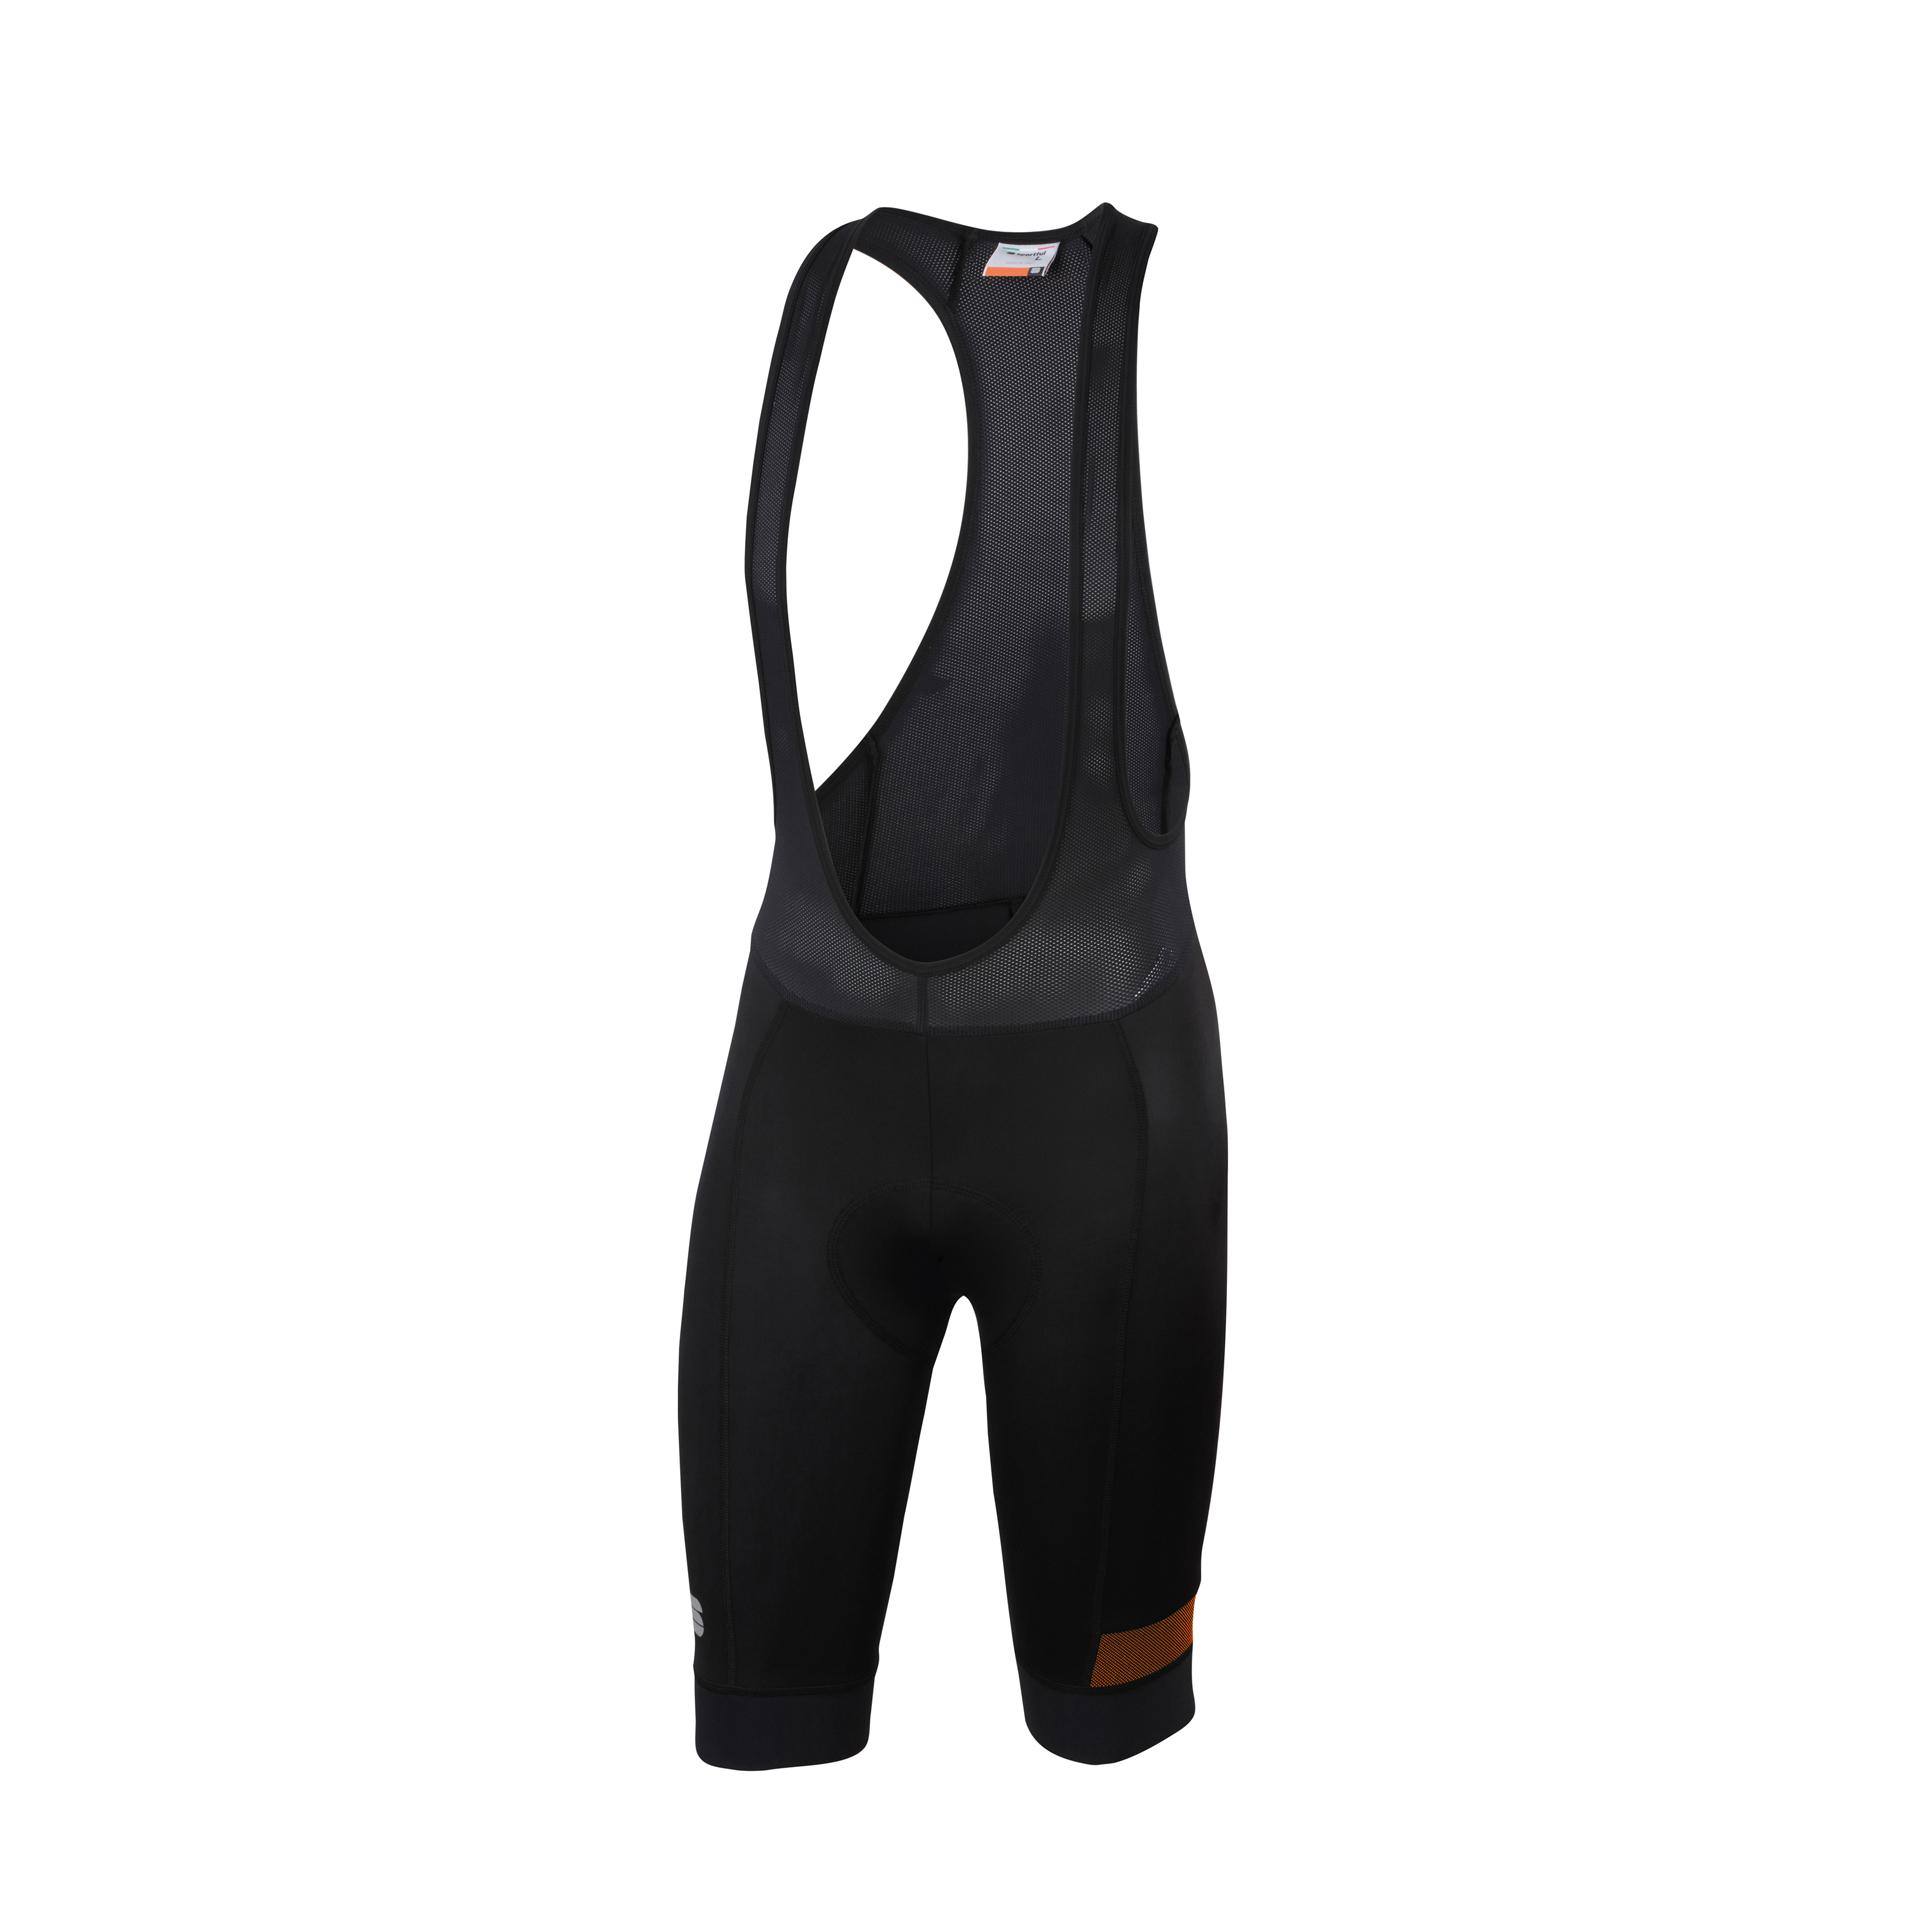 Afbeelding Sportful Fietsbroek met bretels - koersbroek Heren Zwart Oranje / SF Giara Bibshort-Black/Orange Sdr